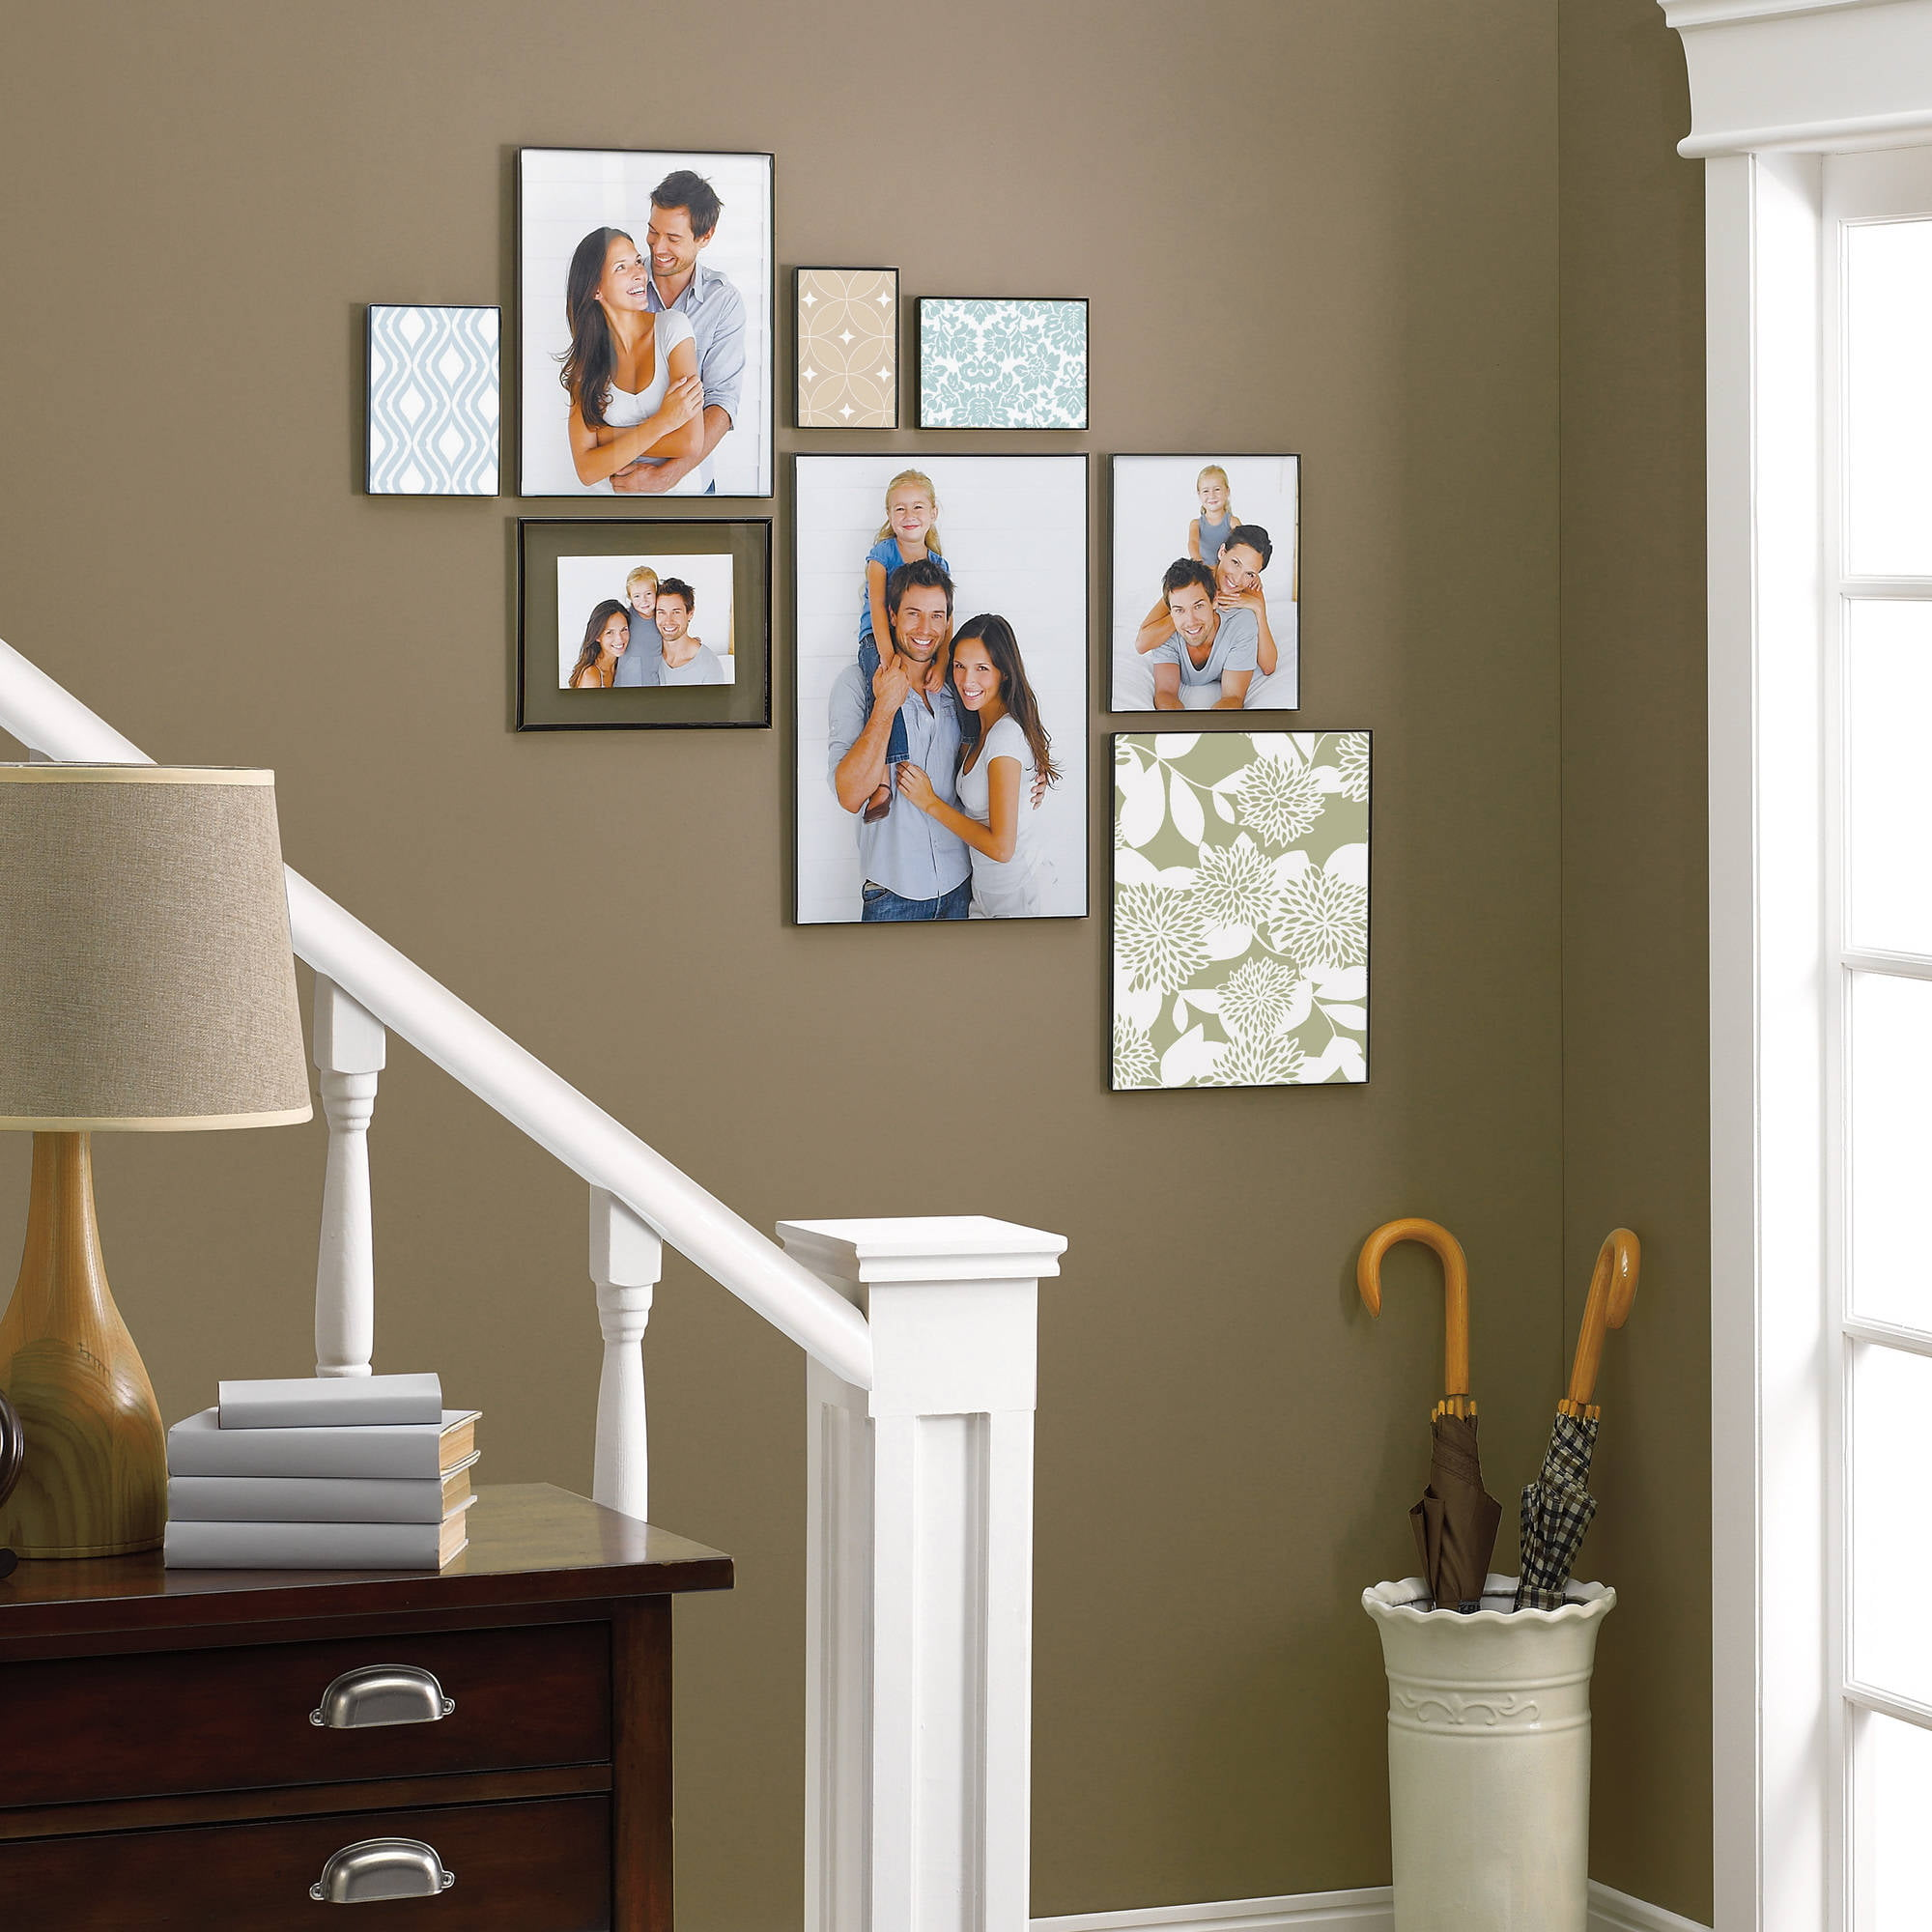 Mainstays 11x17 Format Picture Frame, Set of 3 - Walmart.com